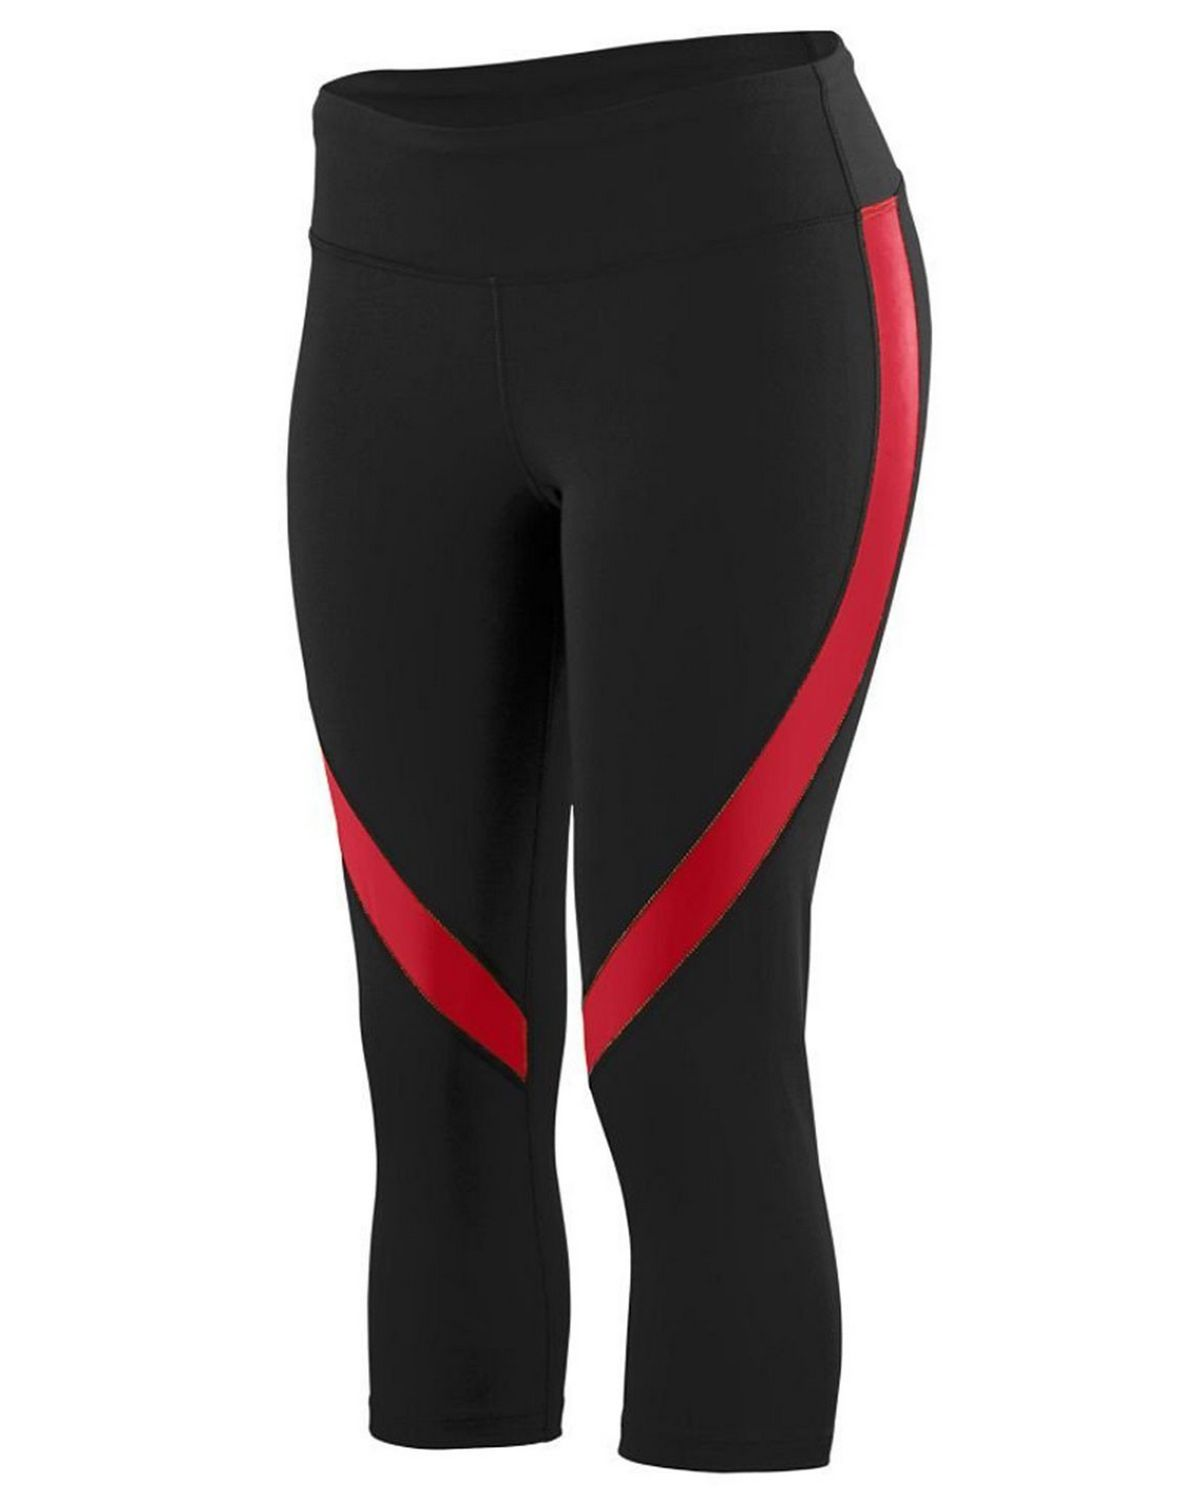 Augusta Sportswear 2405A Ladies Color Block Capri - Black/ Red - L 2405A